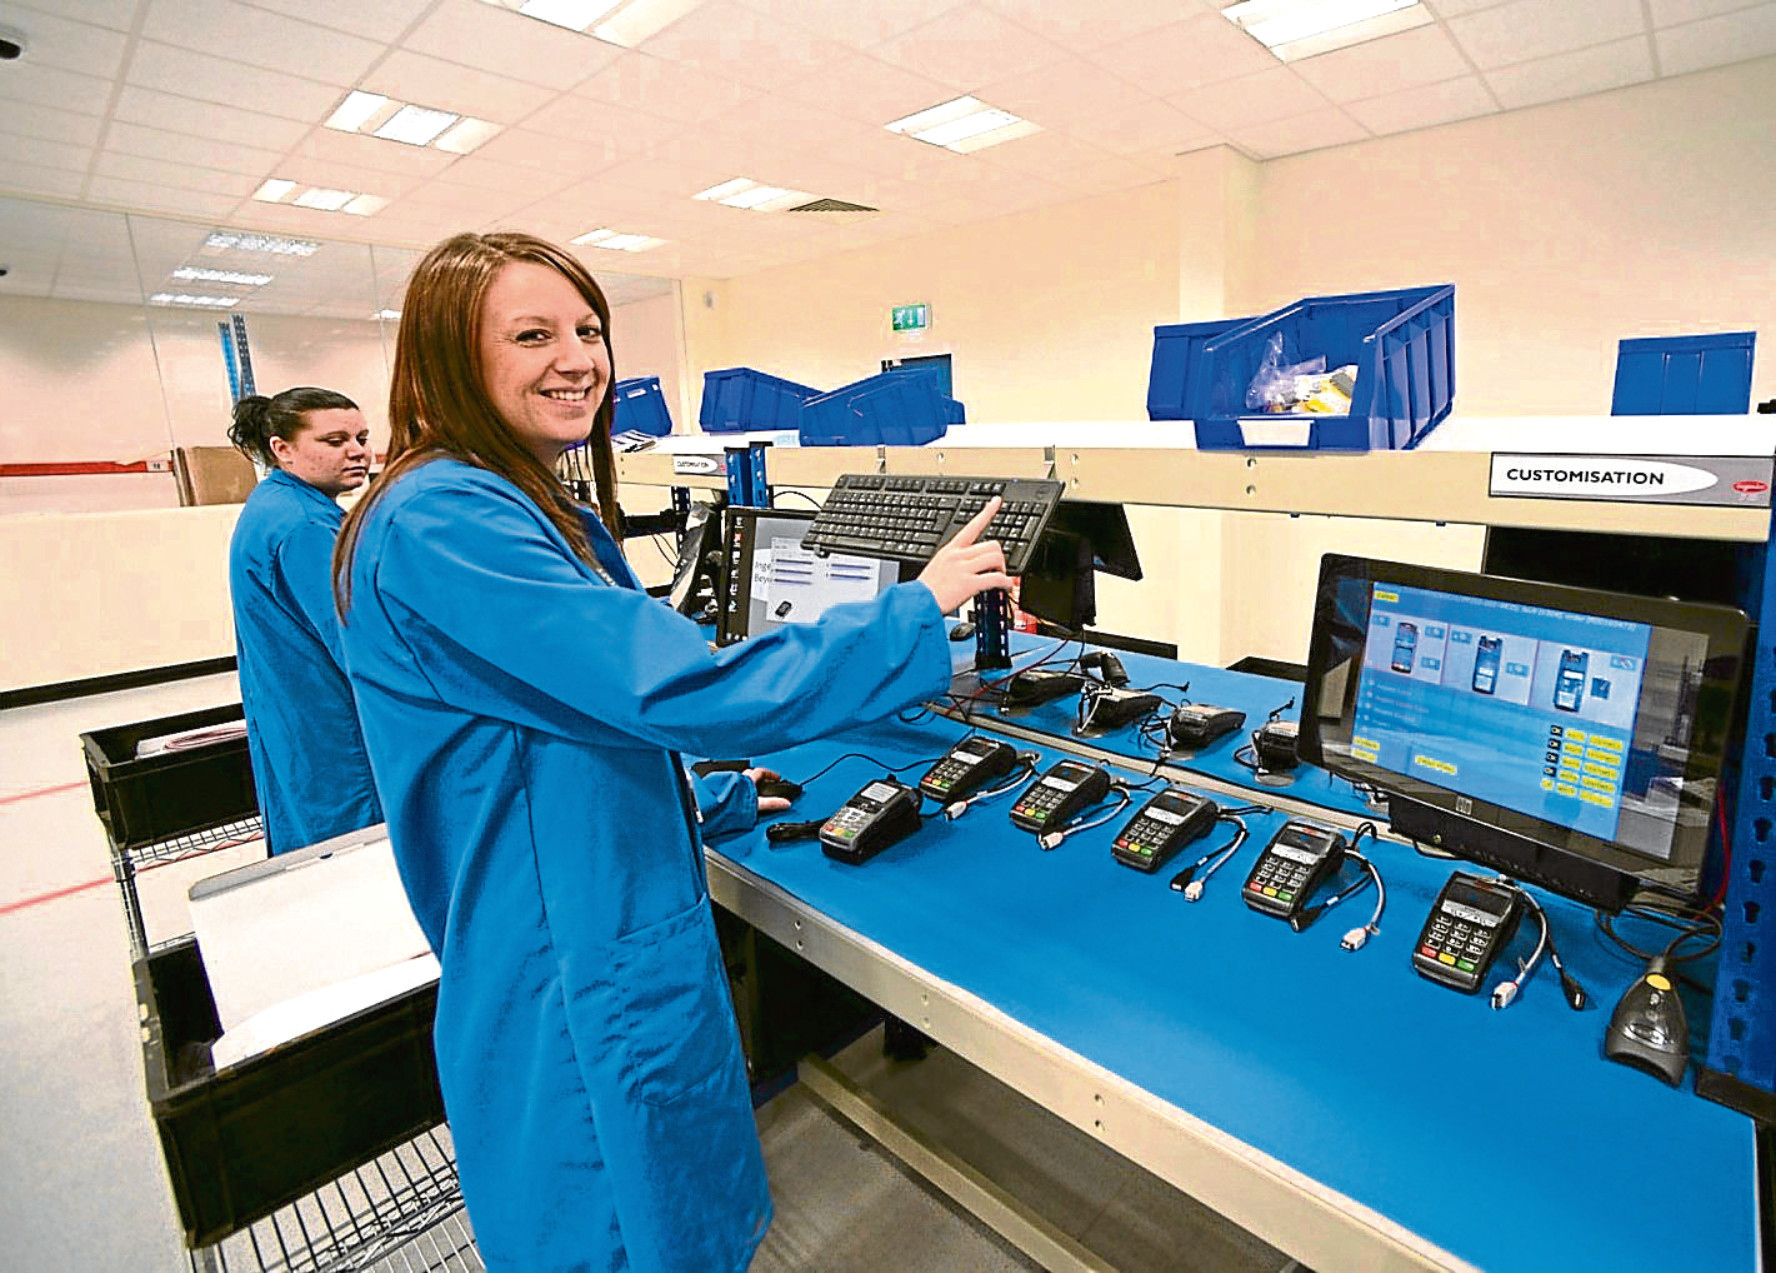 Thousands of handheld payments terminals are tested, packed and supplied by Ingenicos Fife operation each year.